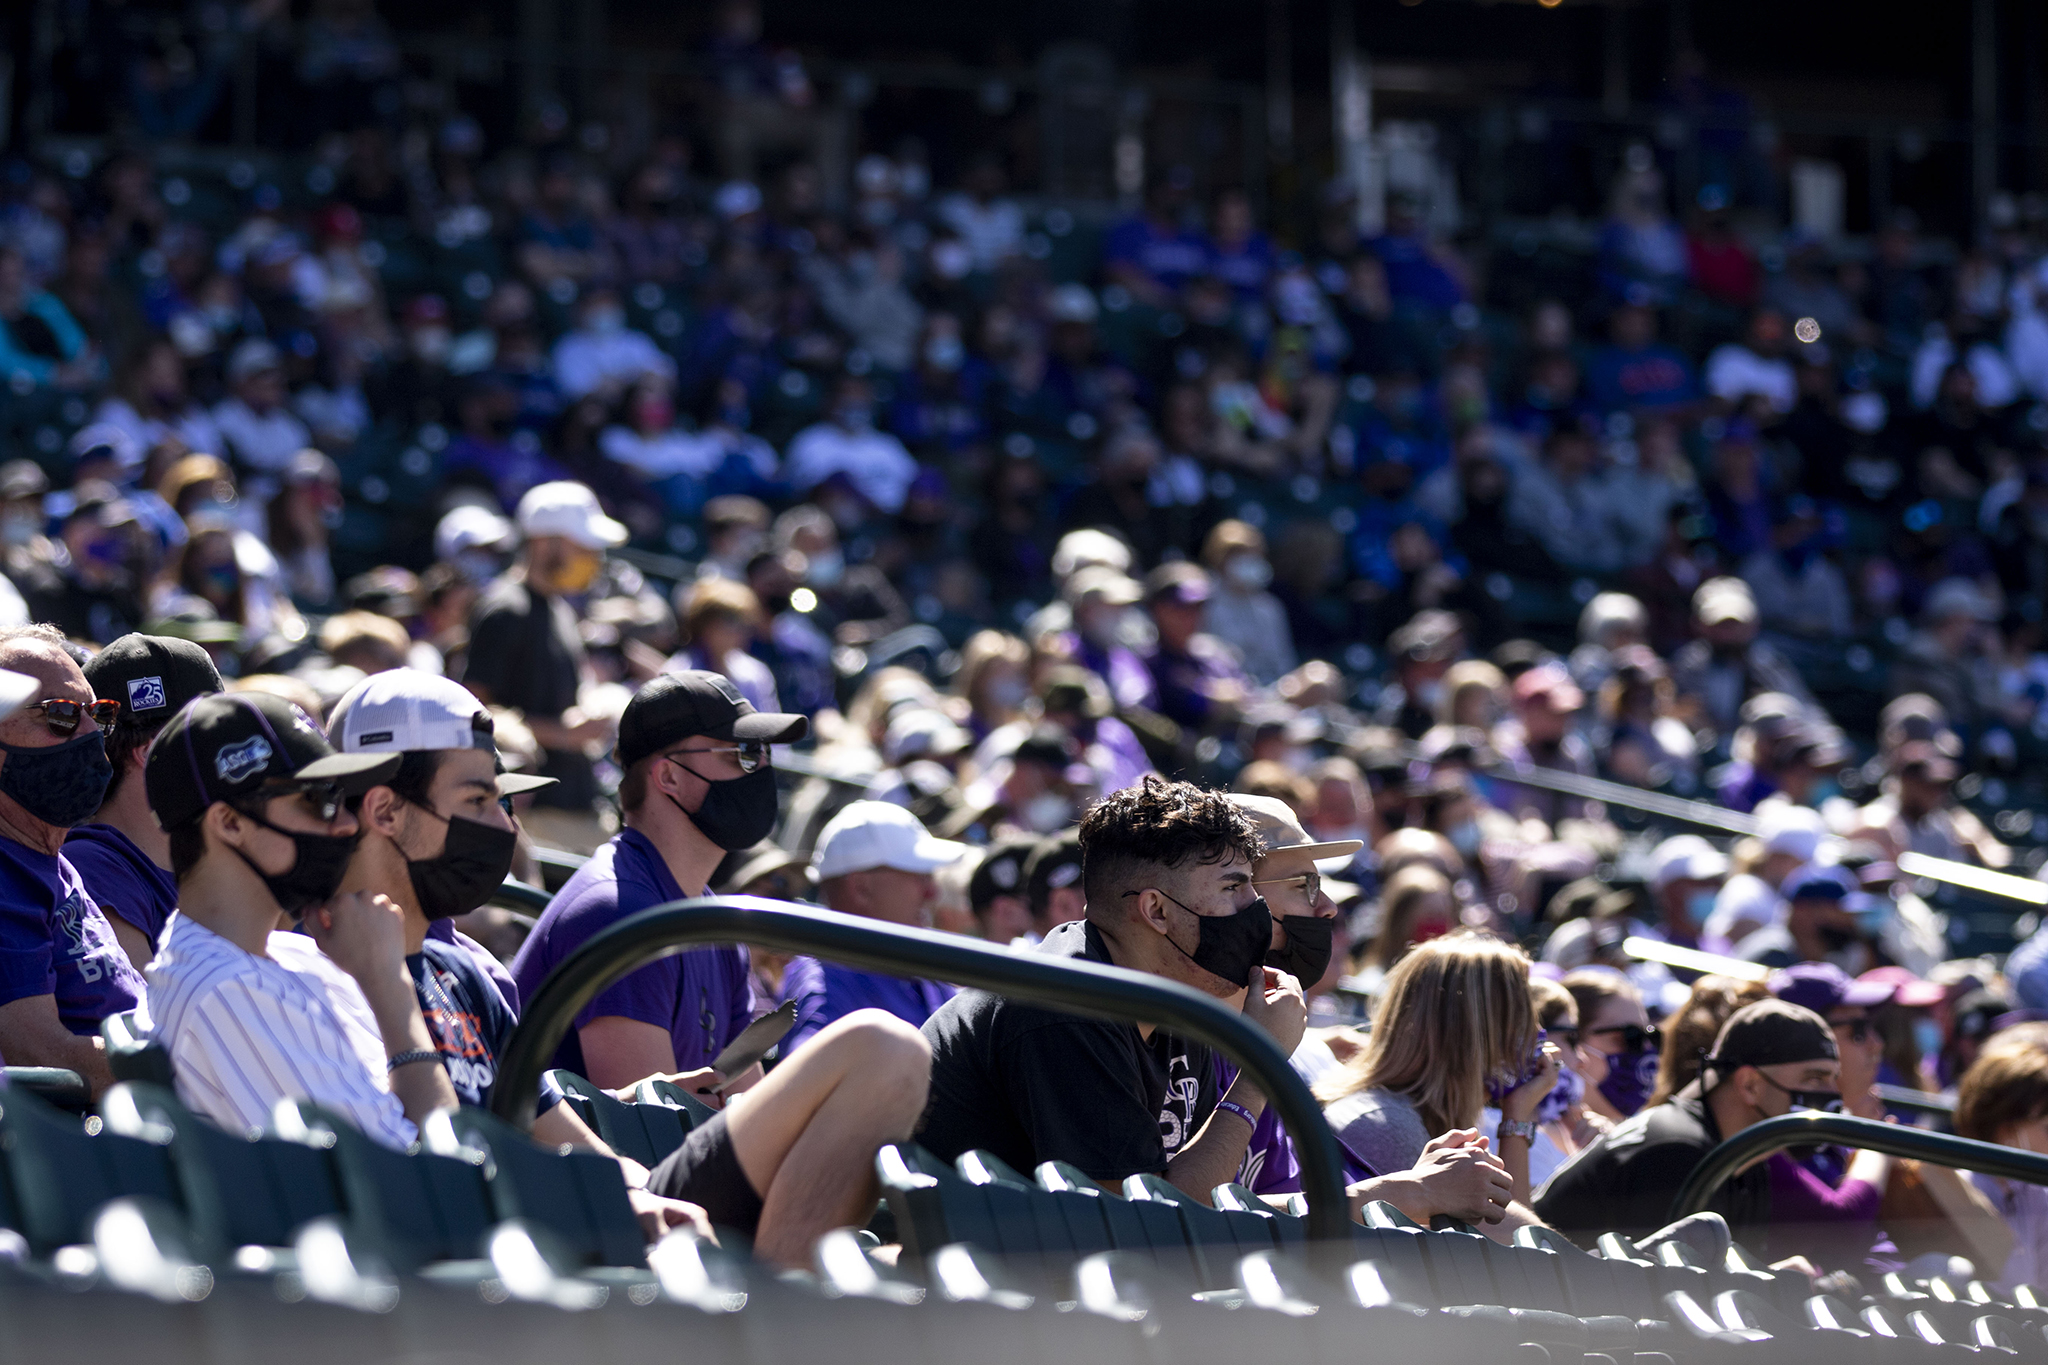 Masks proliferate the grandstands as the Rockies face off against the Los Angeles Dodgers on opening day at Coors Field. April 1, 2021.